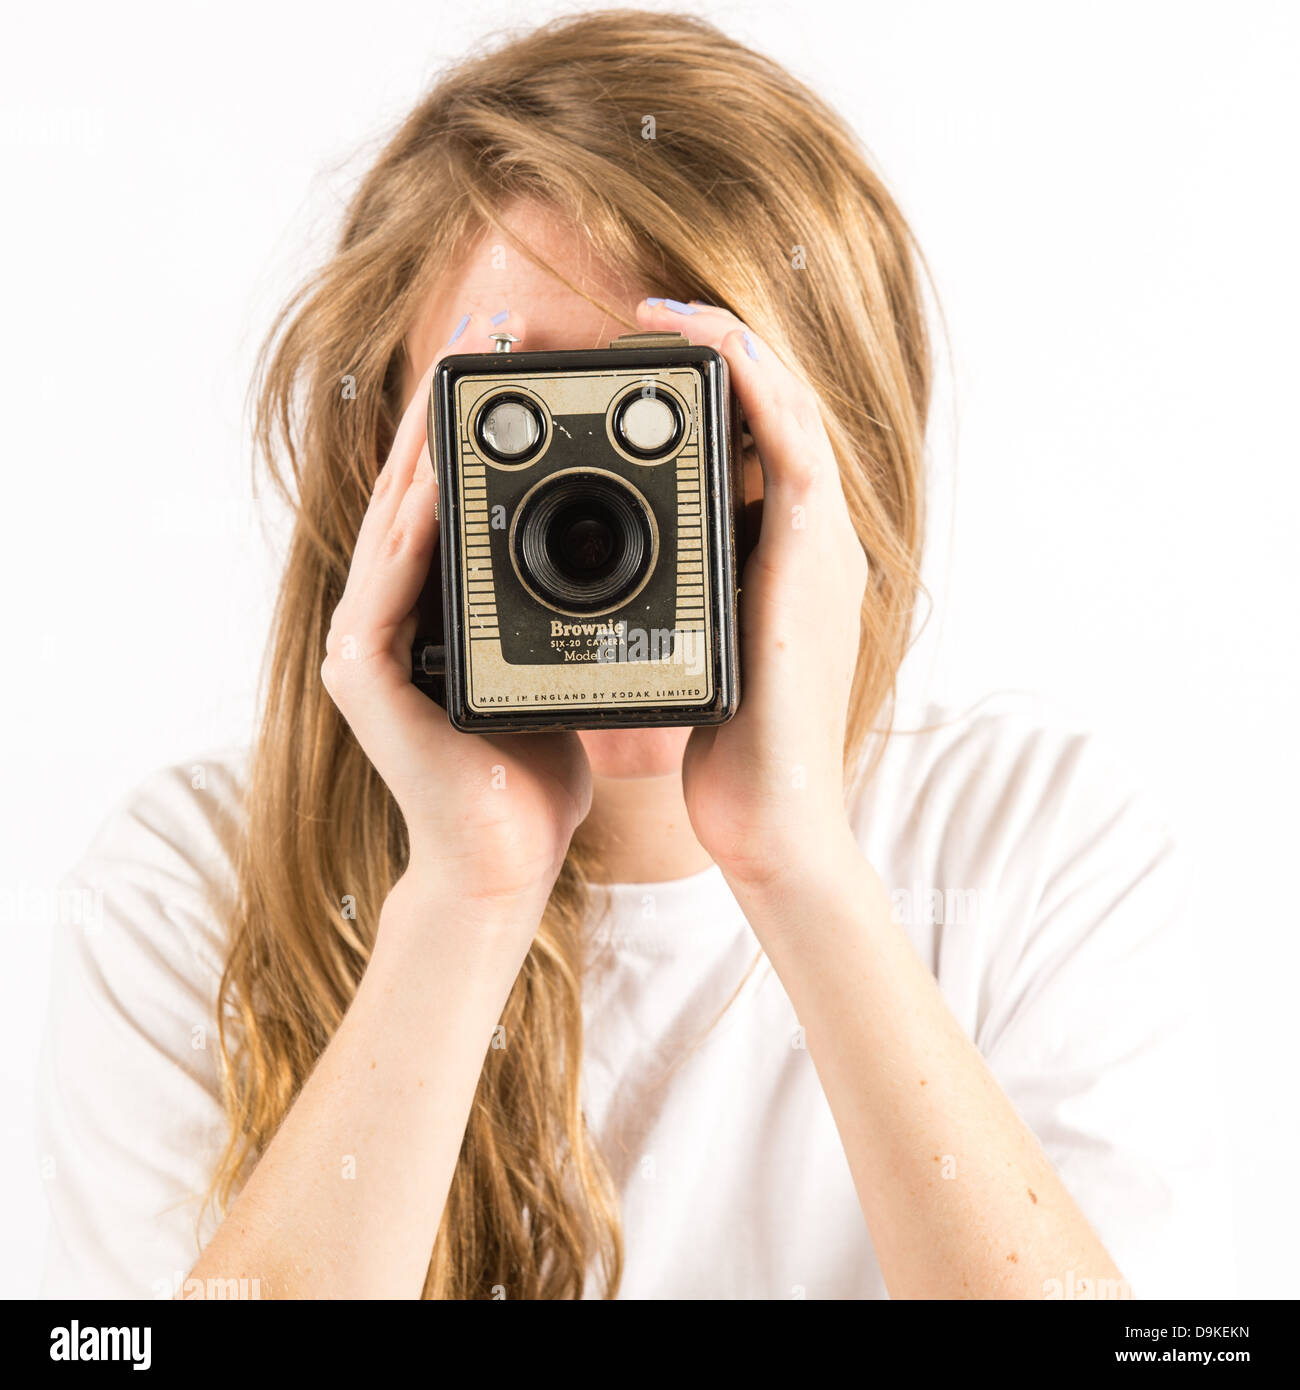 A young woman with long blonde hair holding using an old Kodak Box Brownie camera - Stock Image